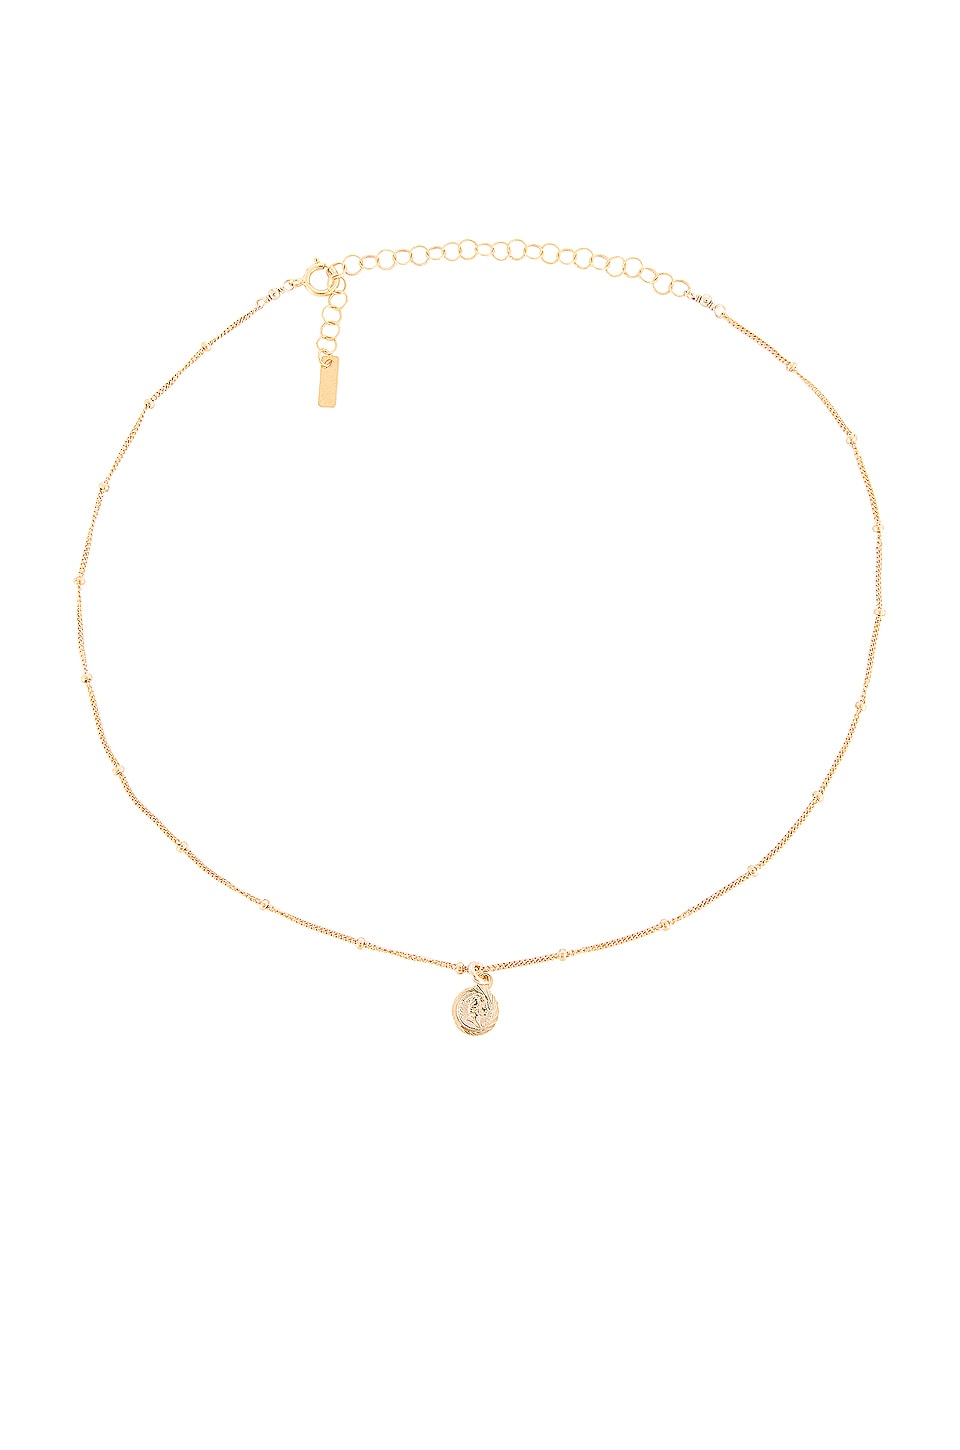 Natalie B Jewelry COLLIER RAS DU COU MINI BOSS